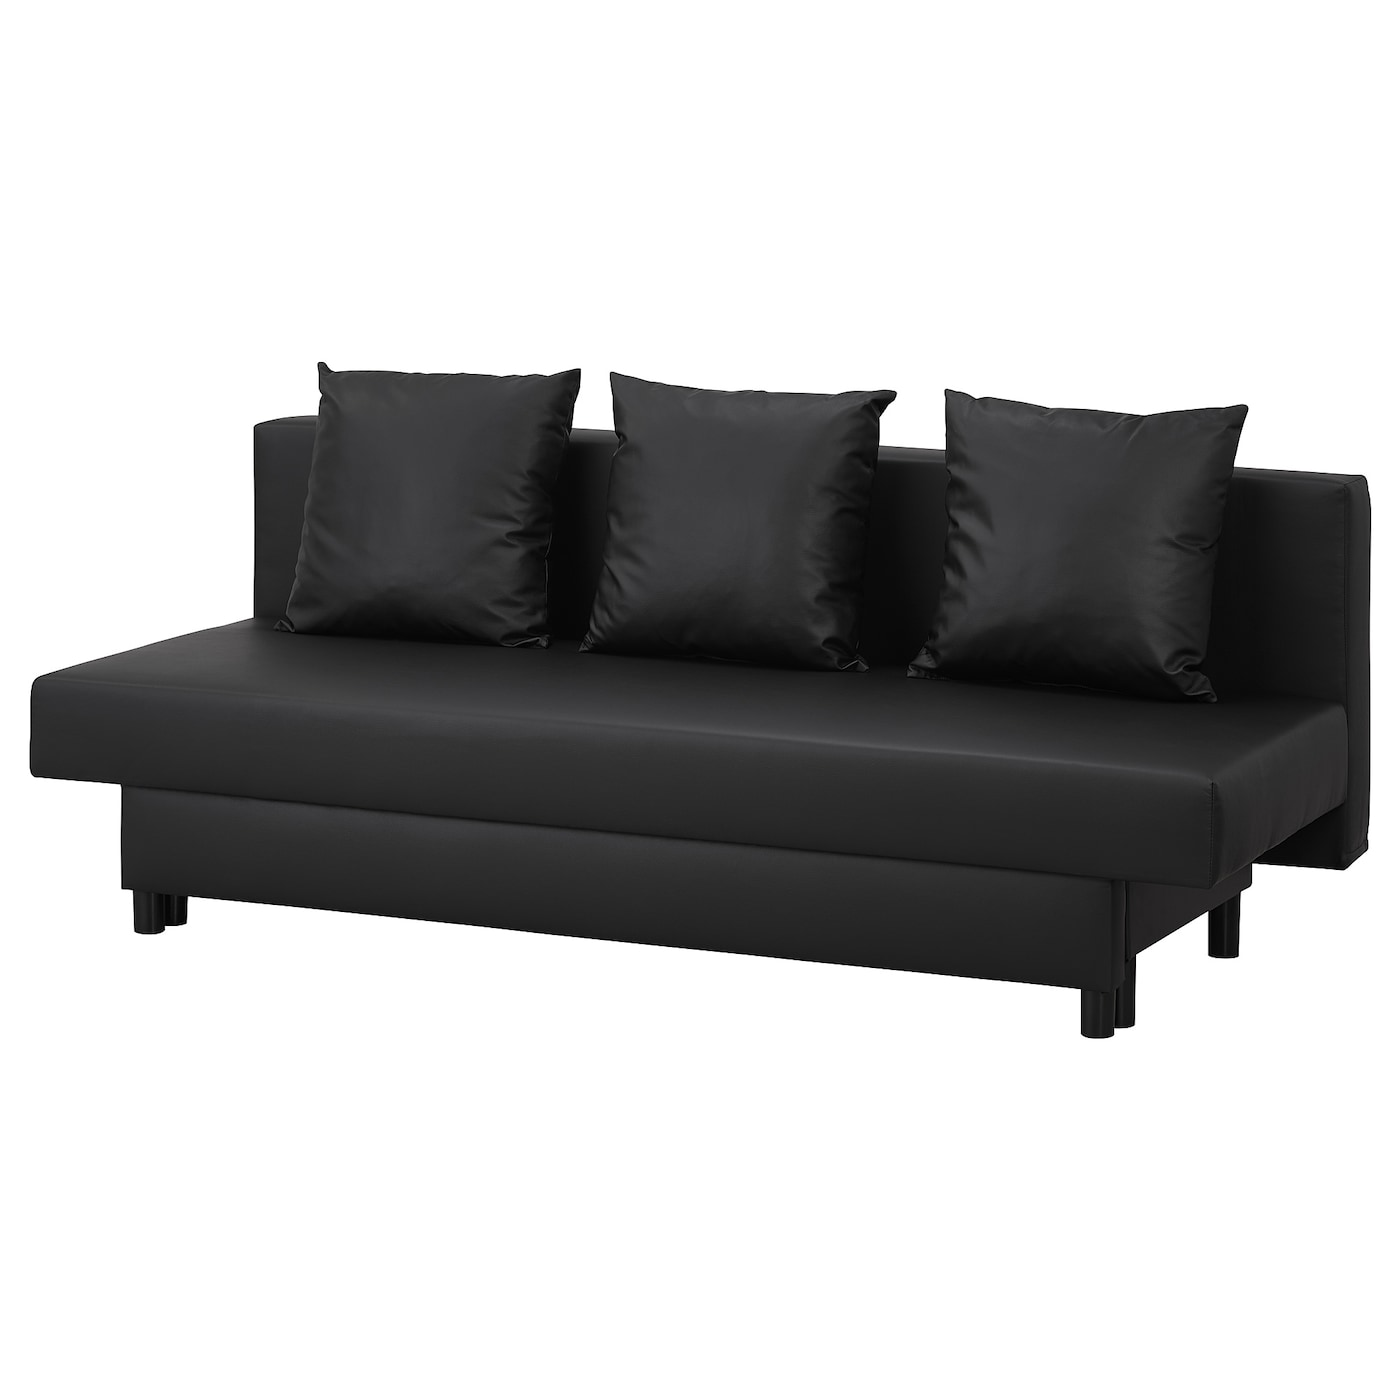 Ikea Asarum 3 Seat Sofa Bed Readily Converts Into A